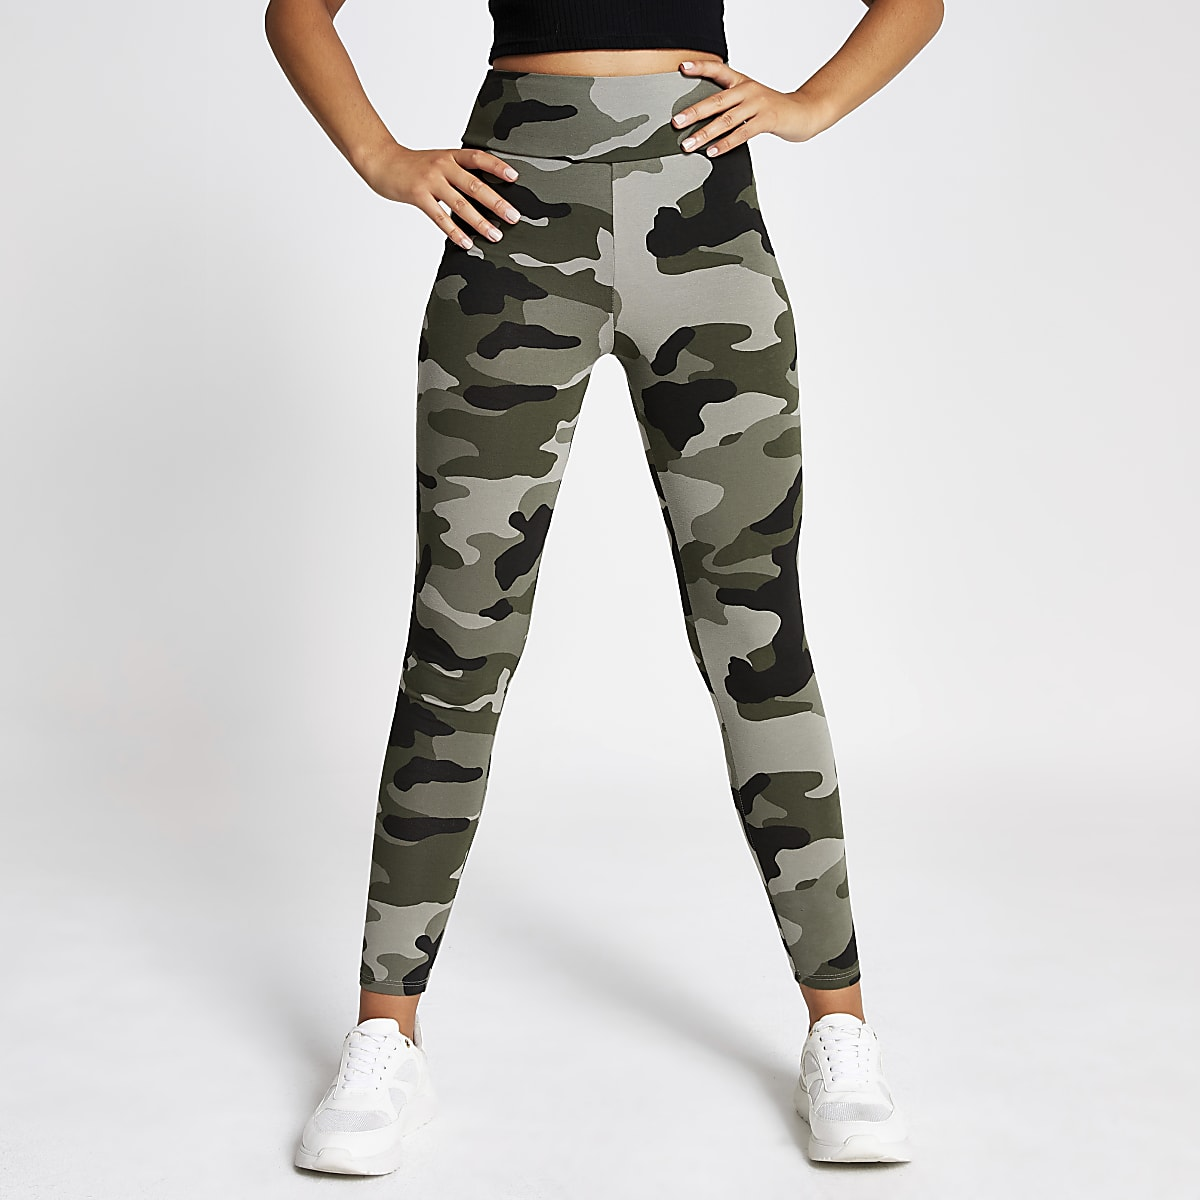 Khaki camo leggings